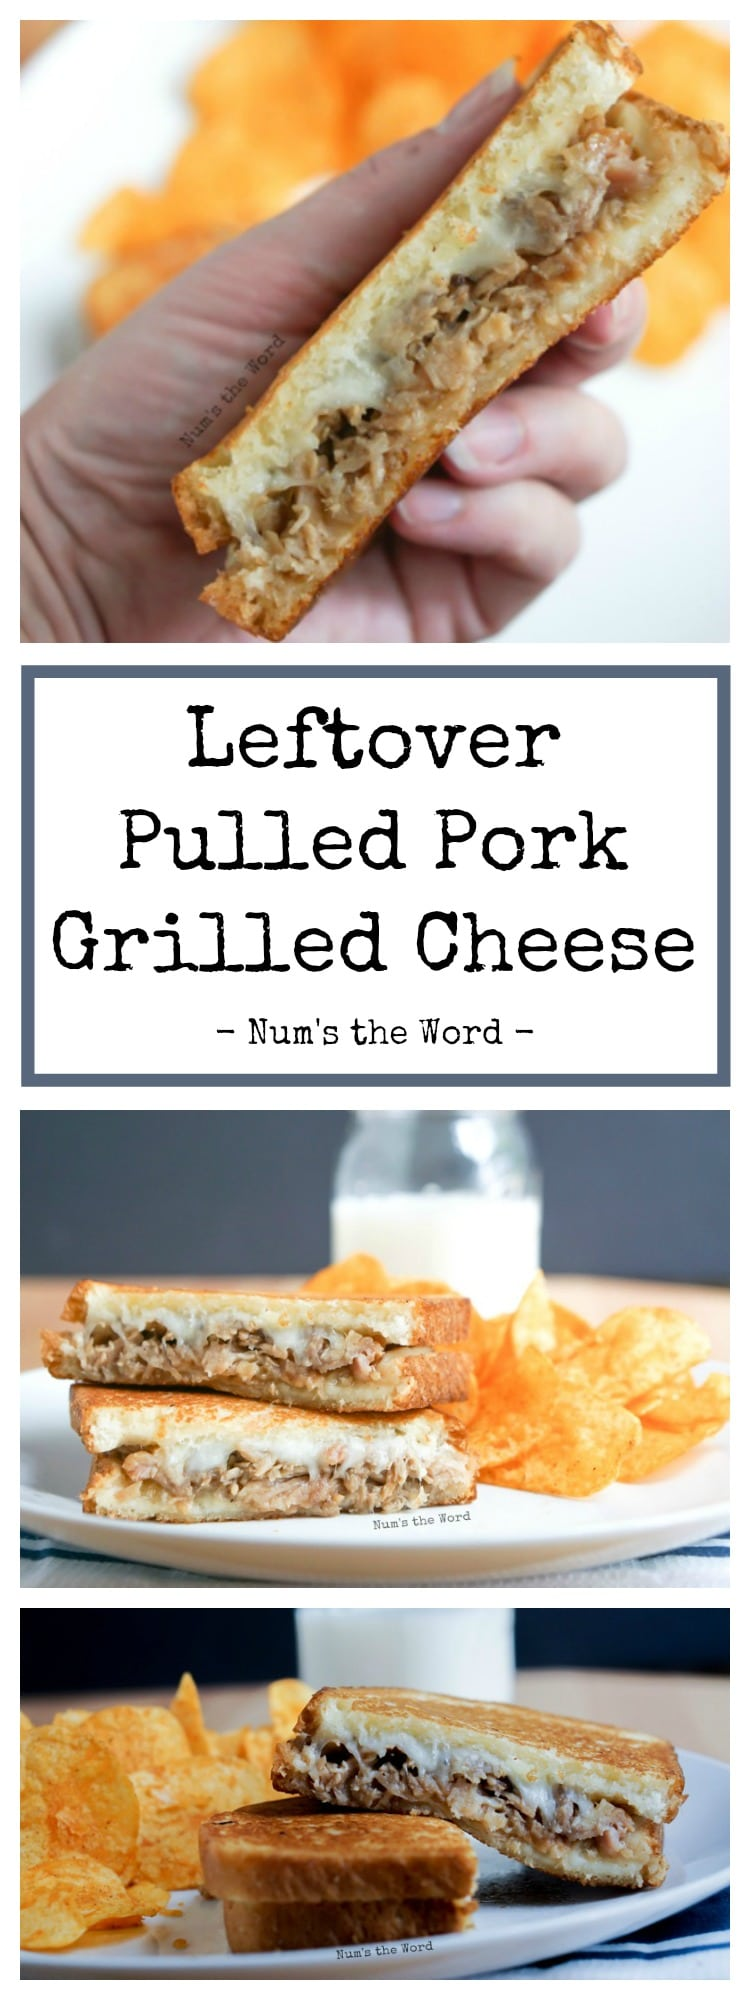 Leftover Pulled Pork Grilled Cheese